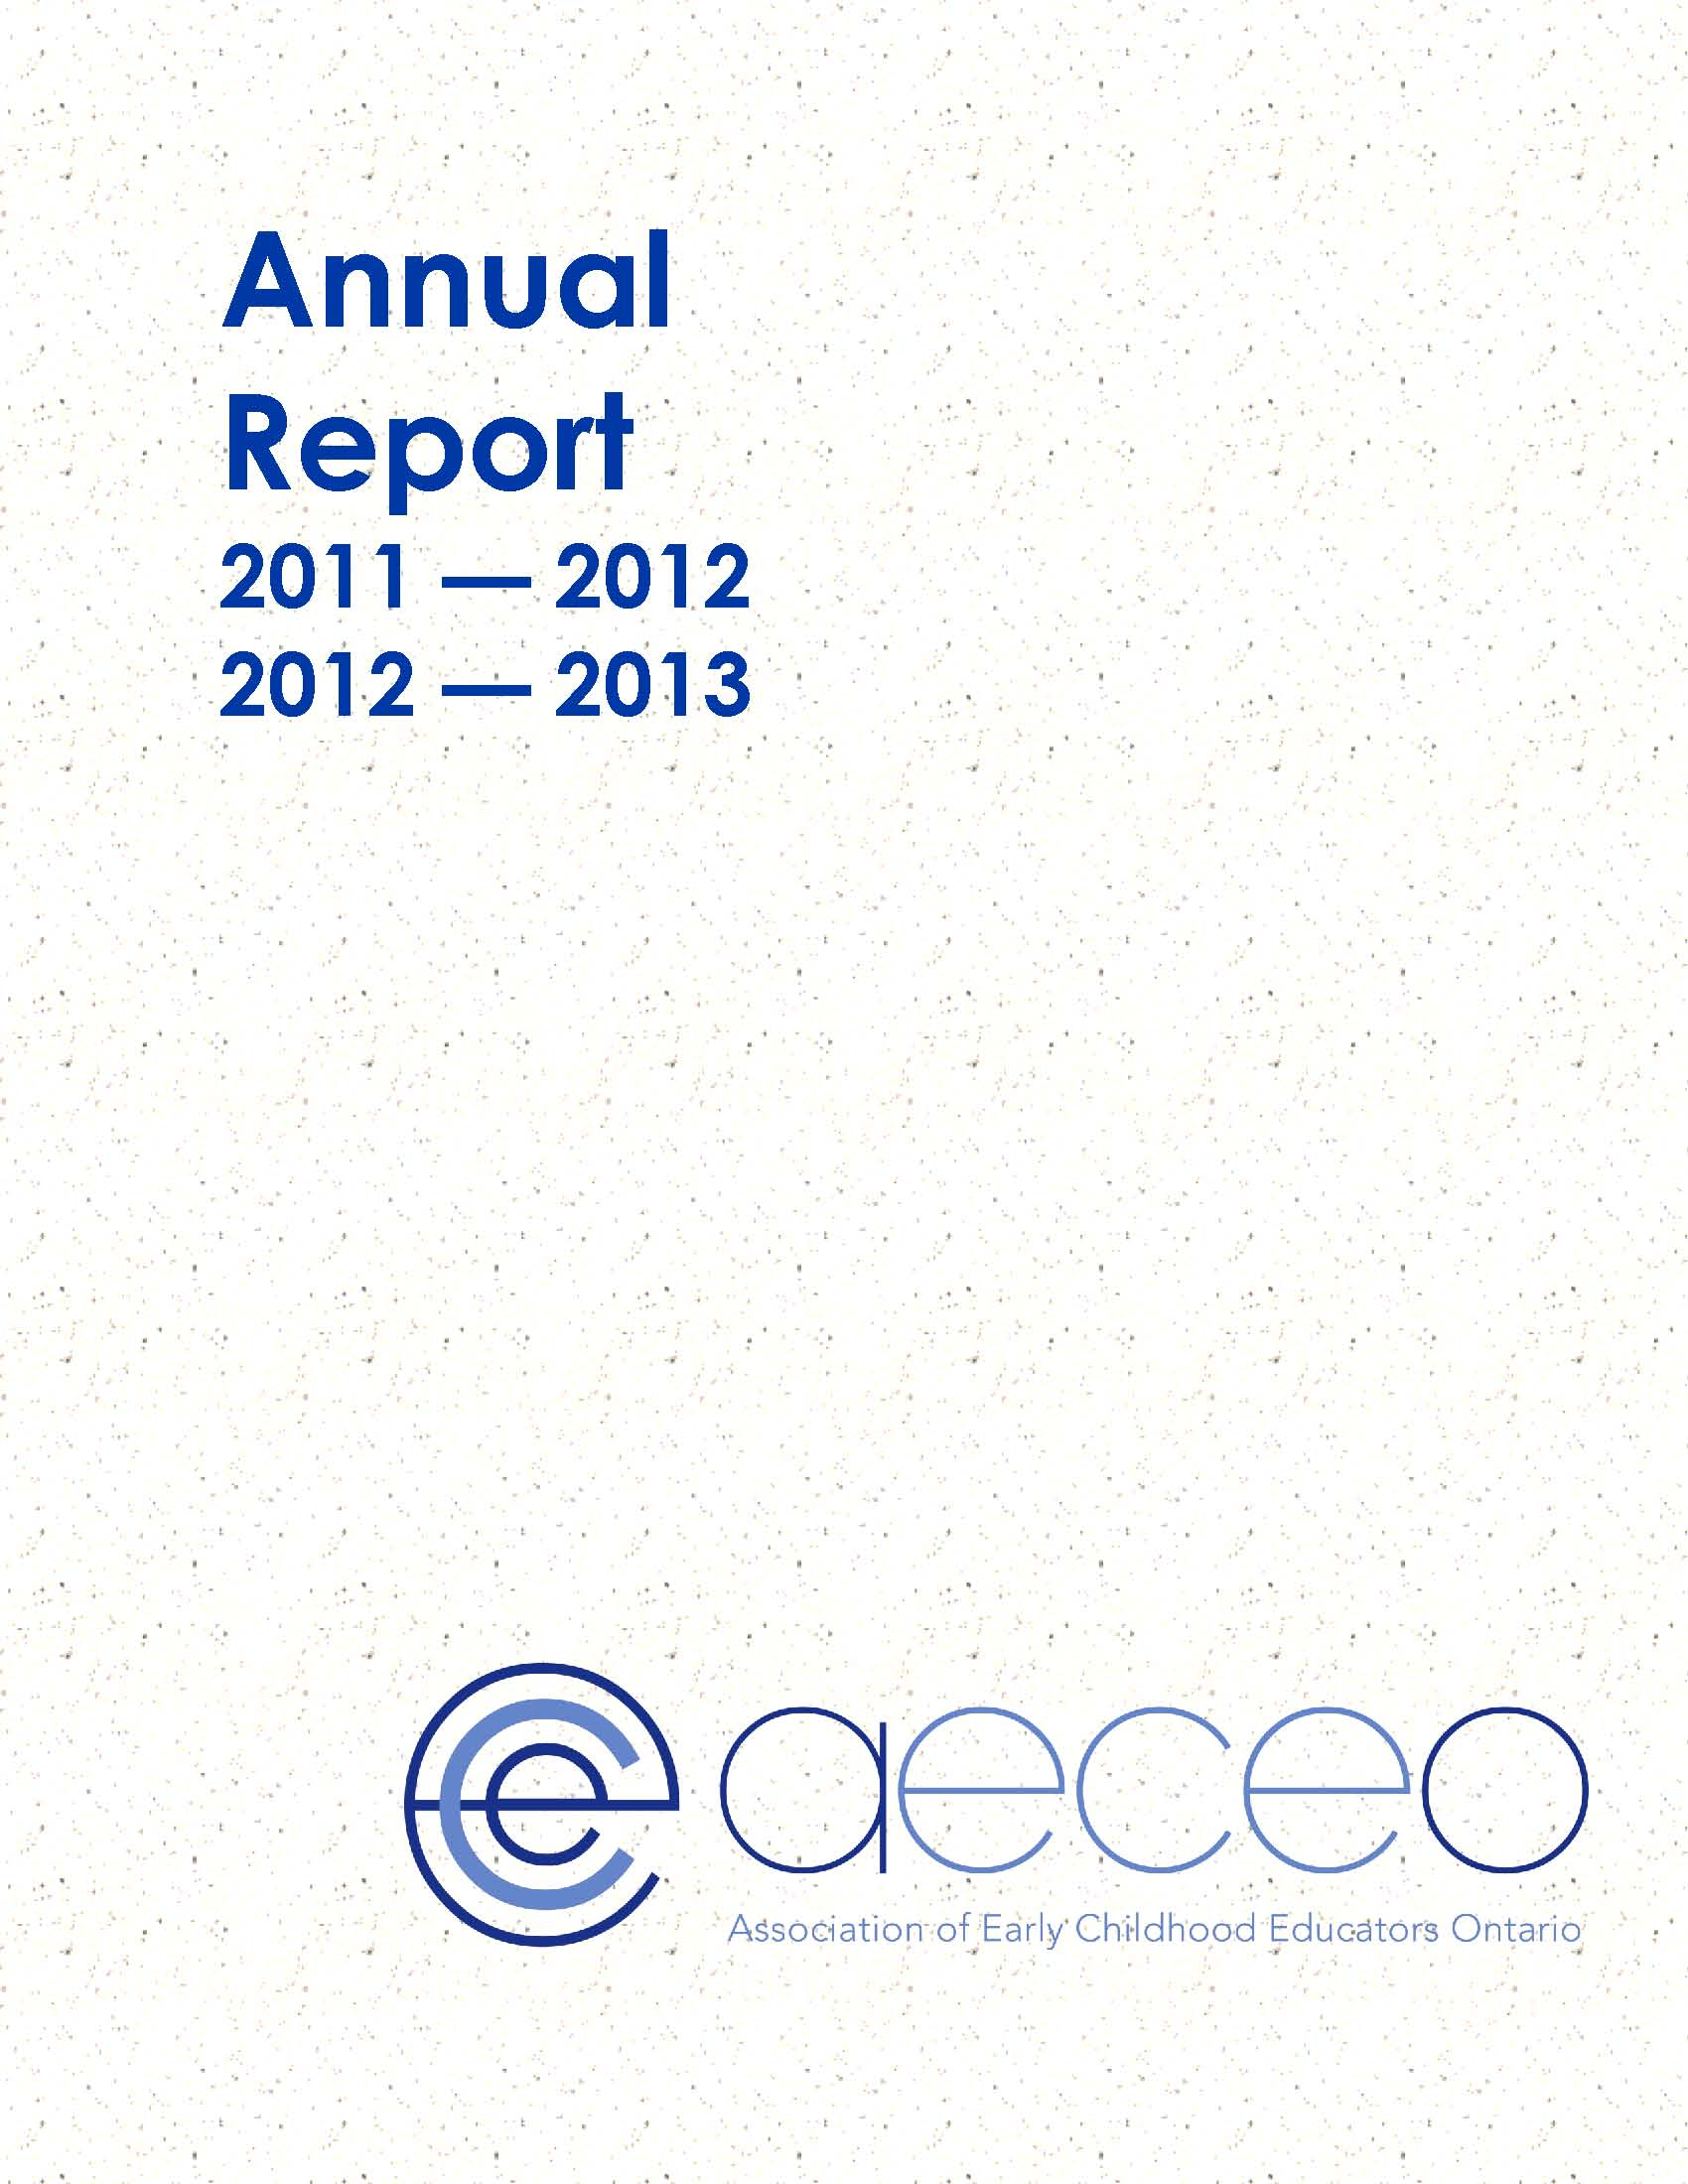 AECEO_Annual_Report_2011-2013_1.jpg